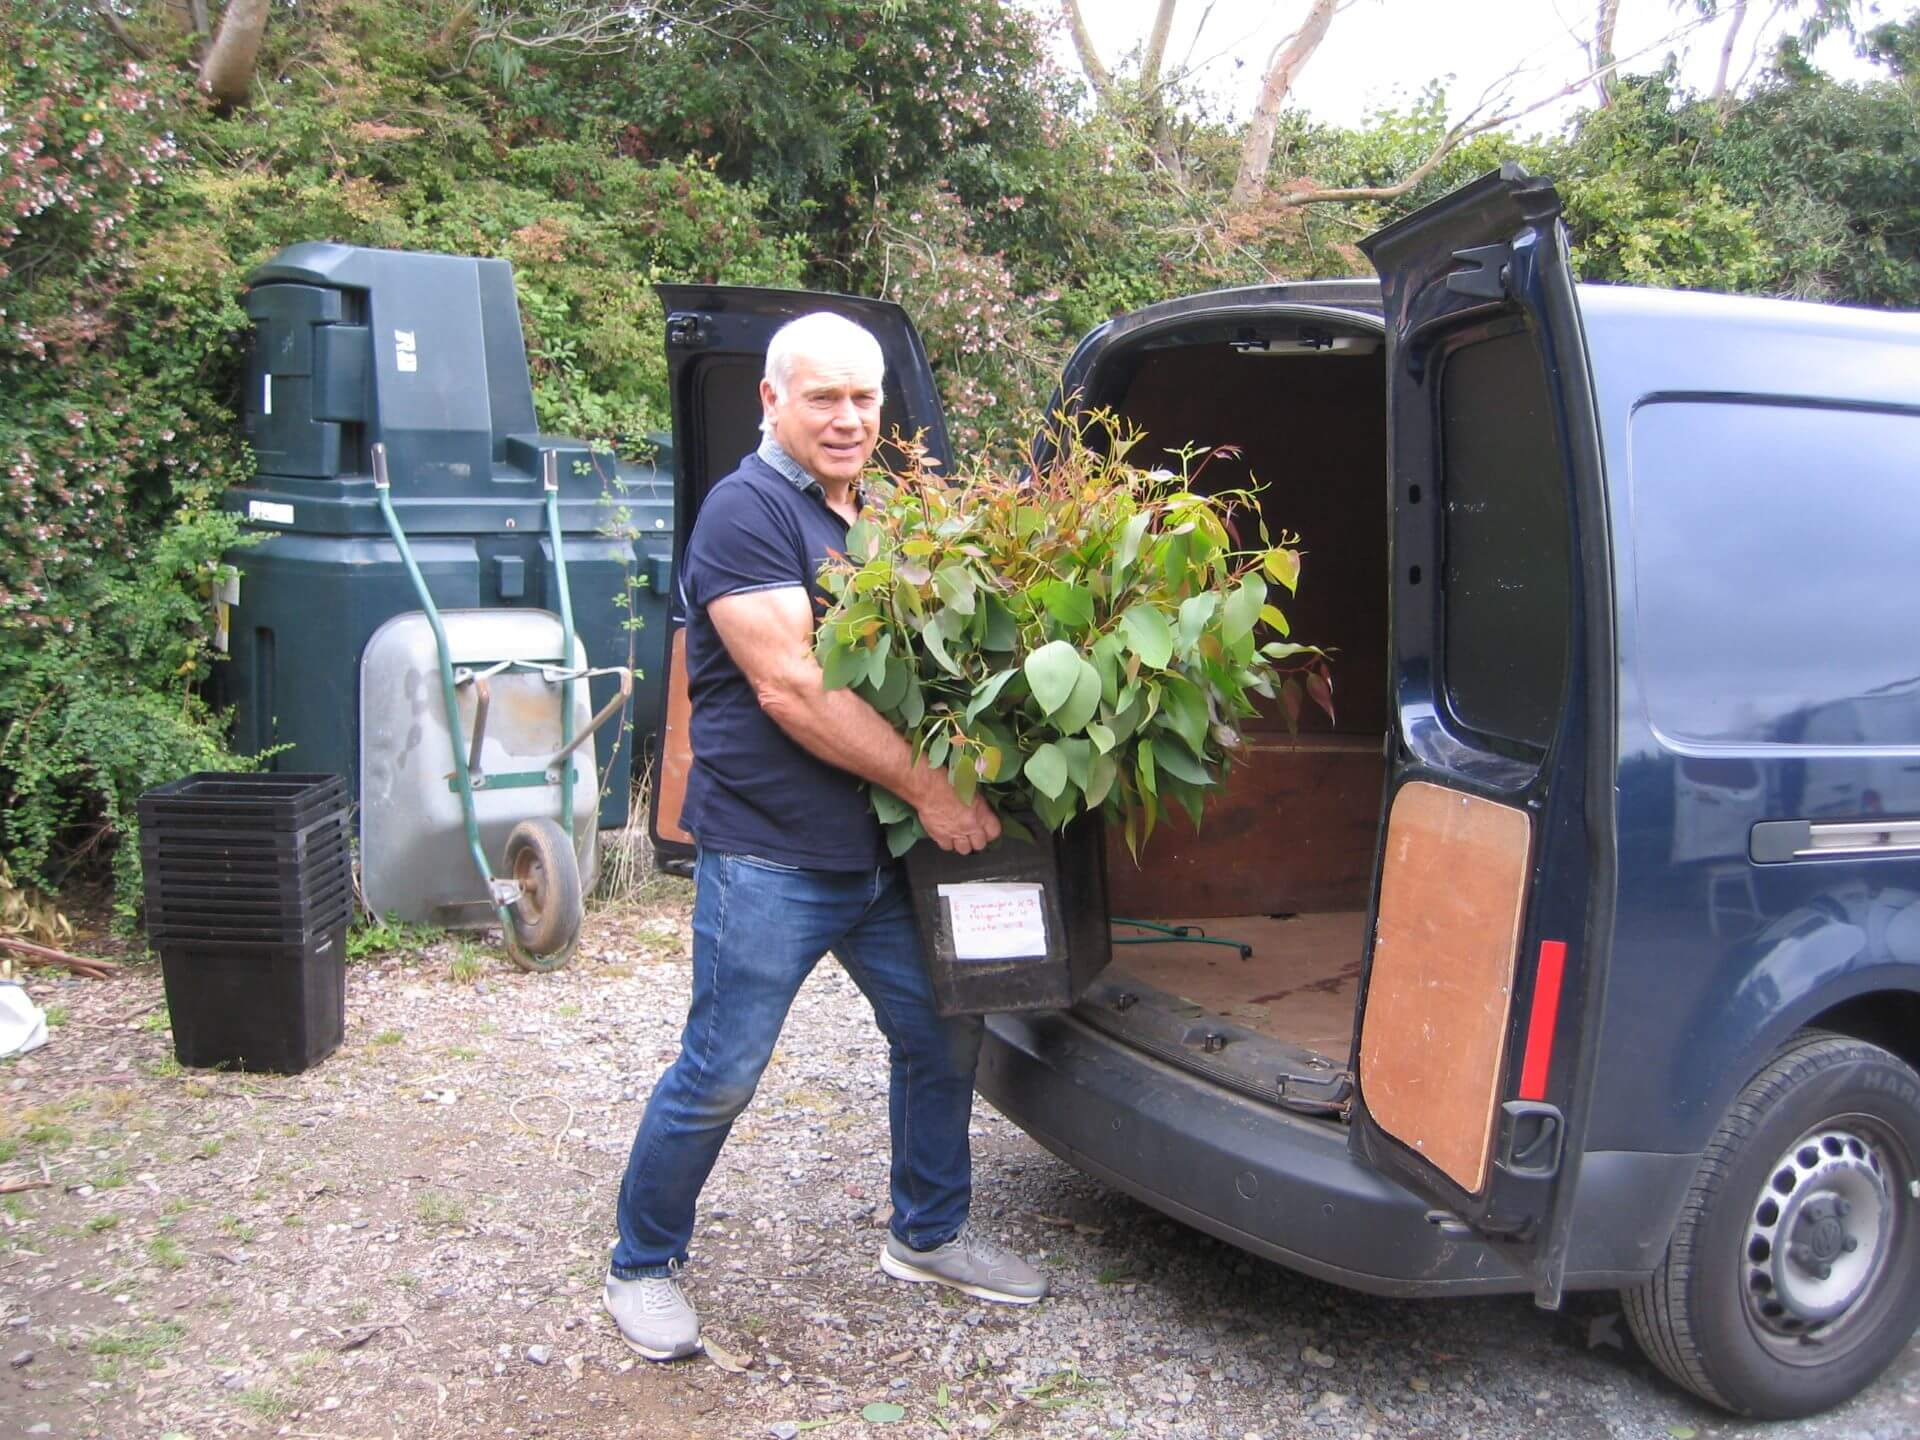 Edward-loading-the-van-in-Devon-England